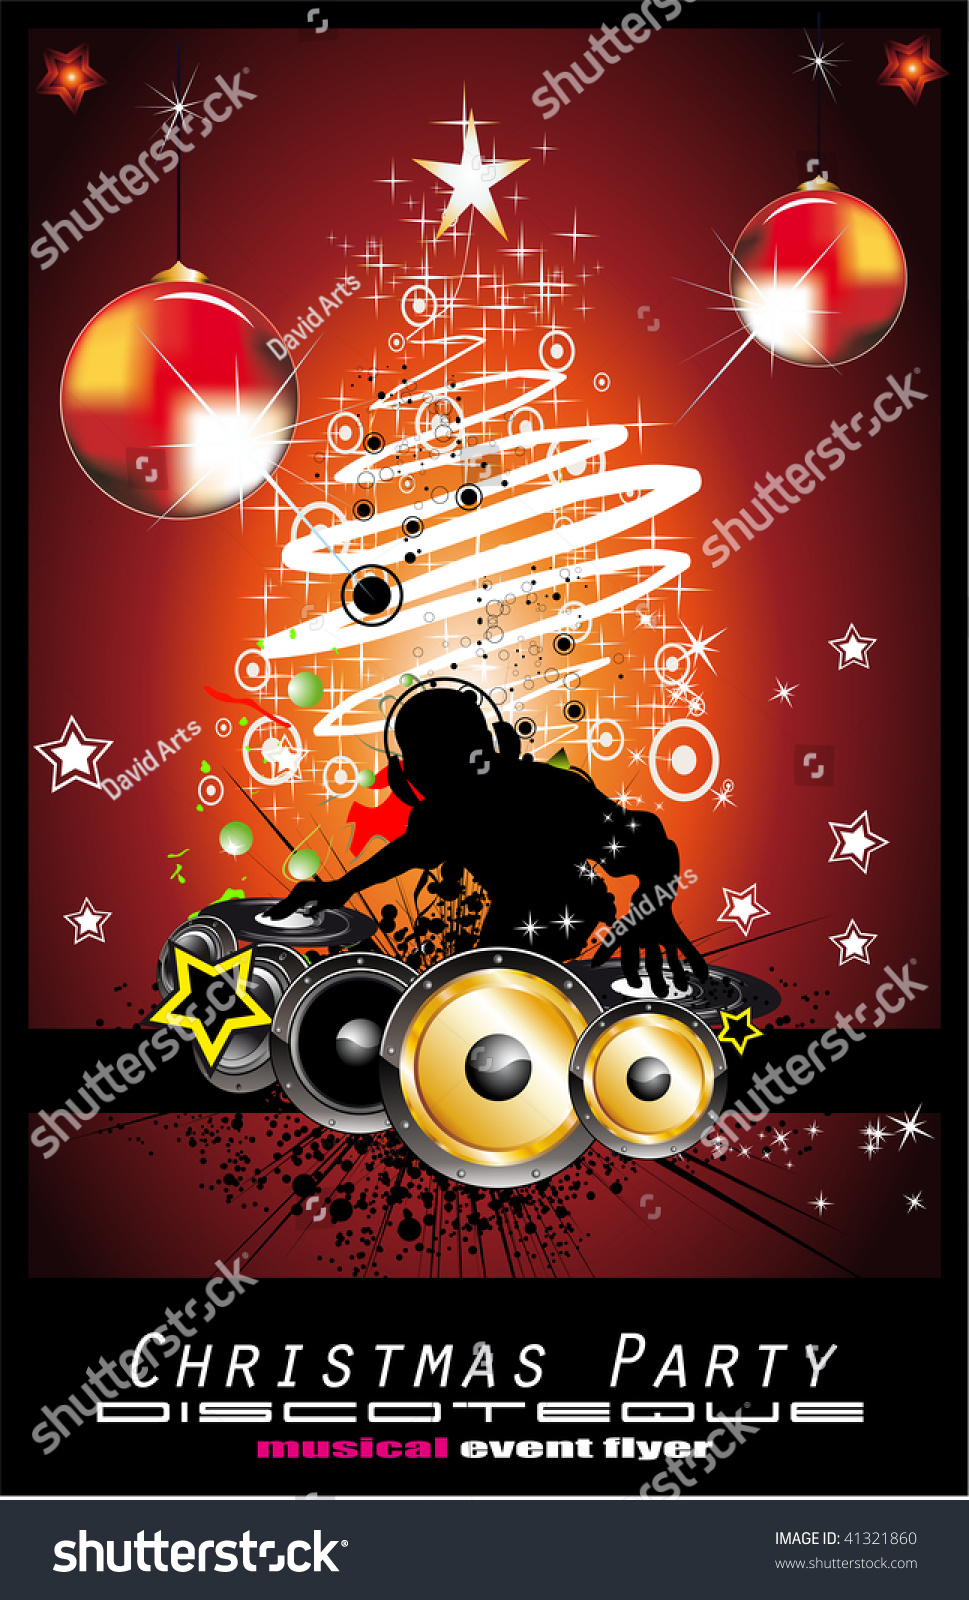 abstract christmas party disco music background stock illustration abstract christmas party disco music background for event flyers